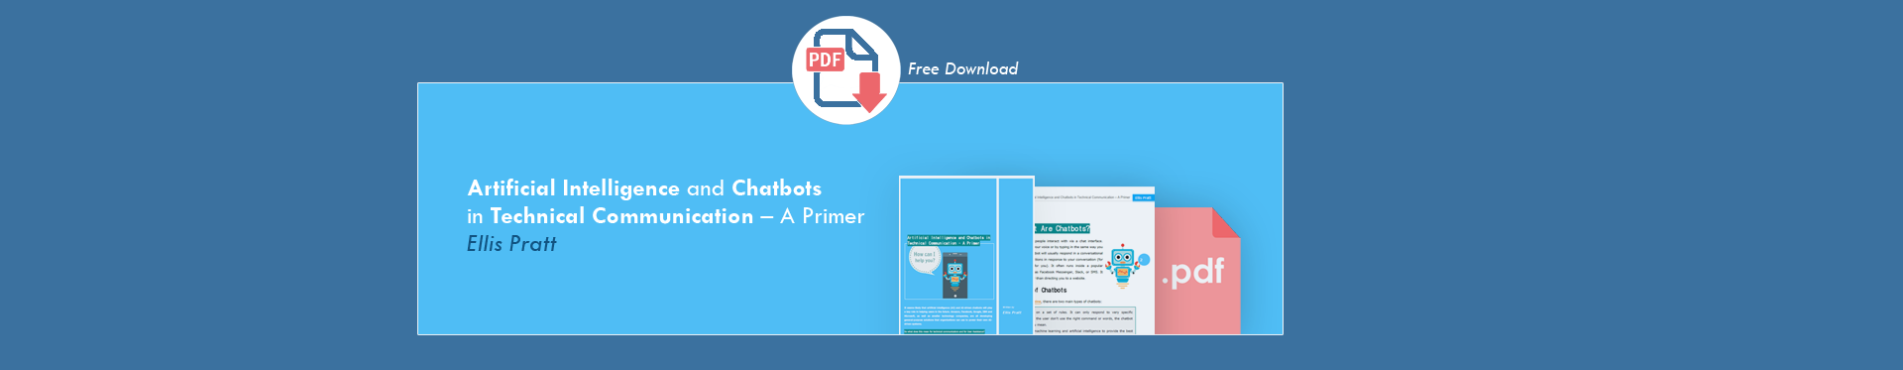 pdf-free-download-chatbots-and-ai